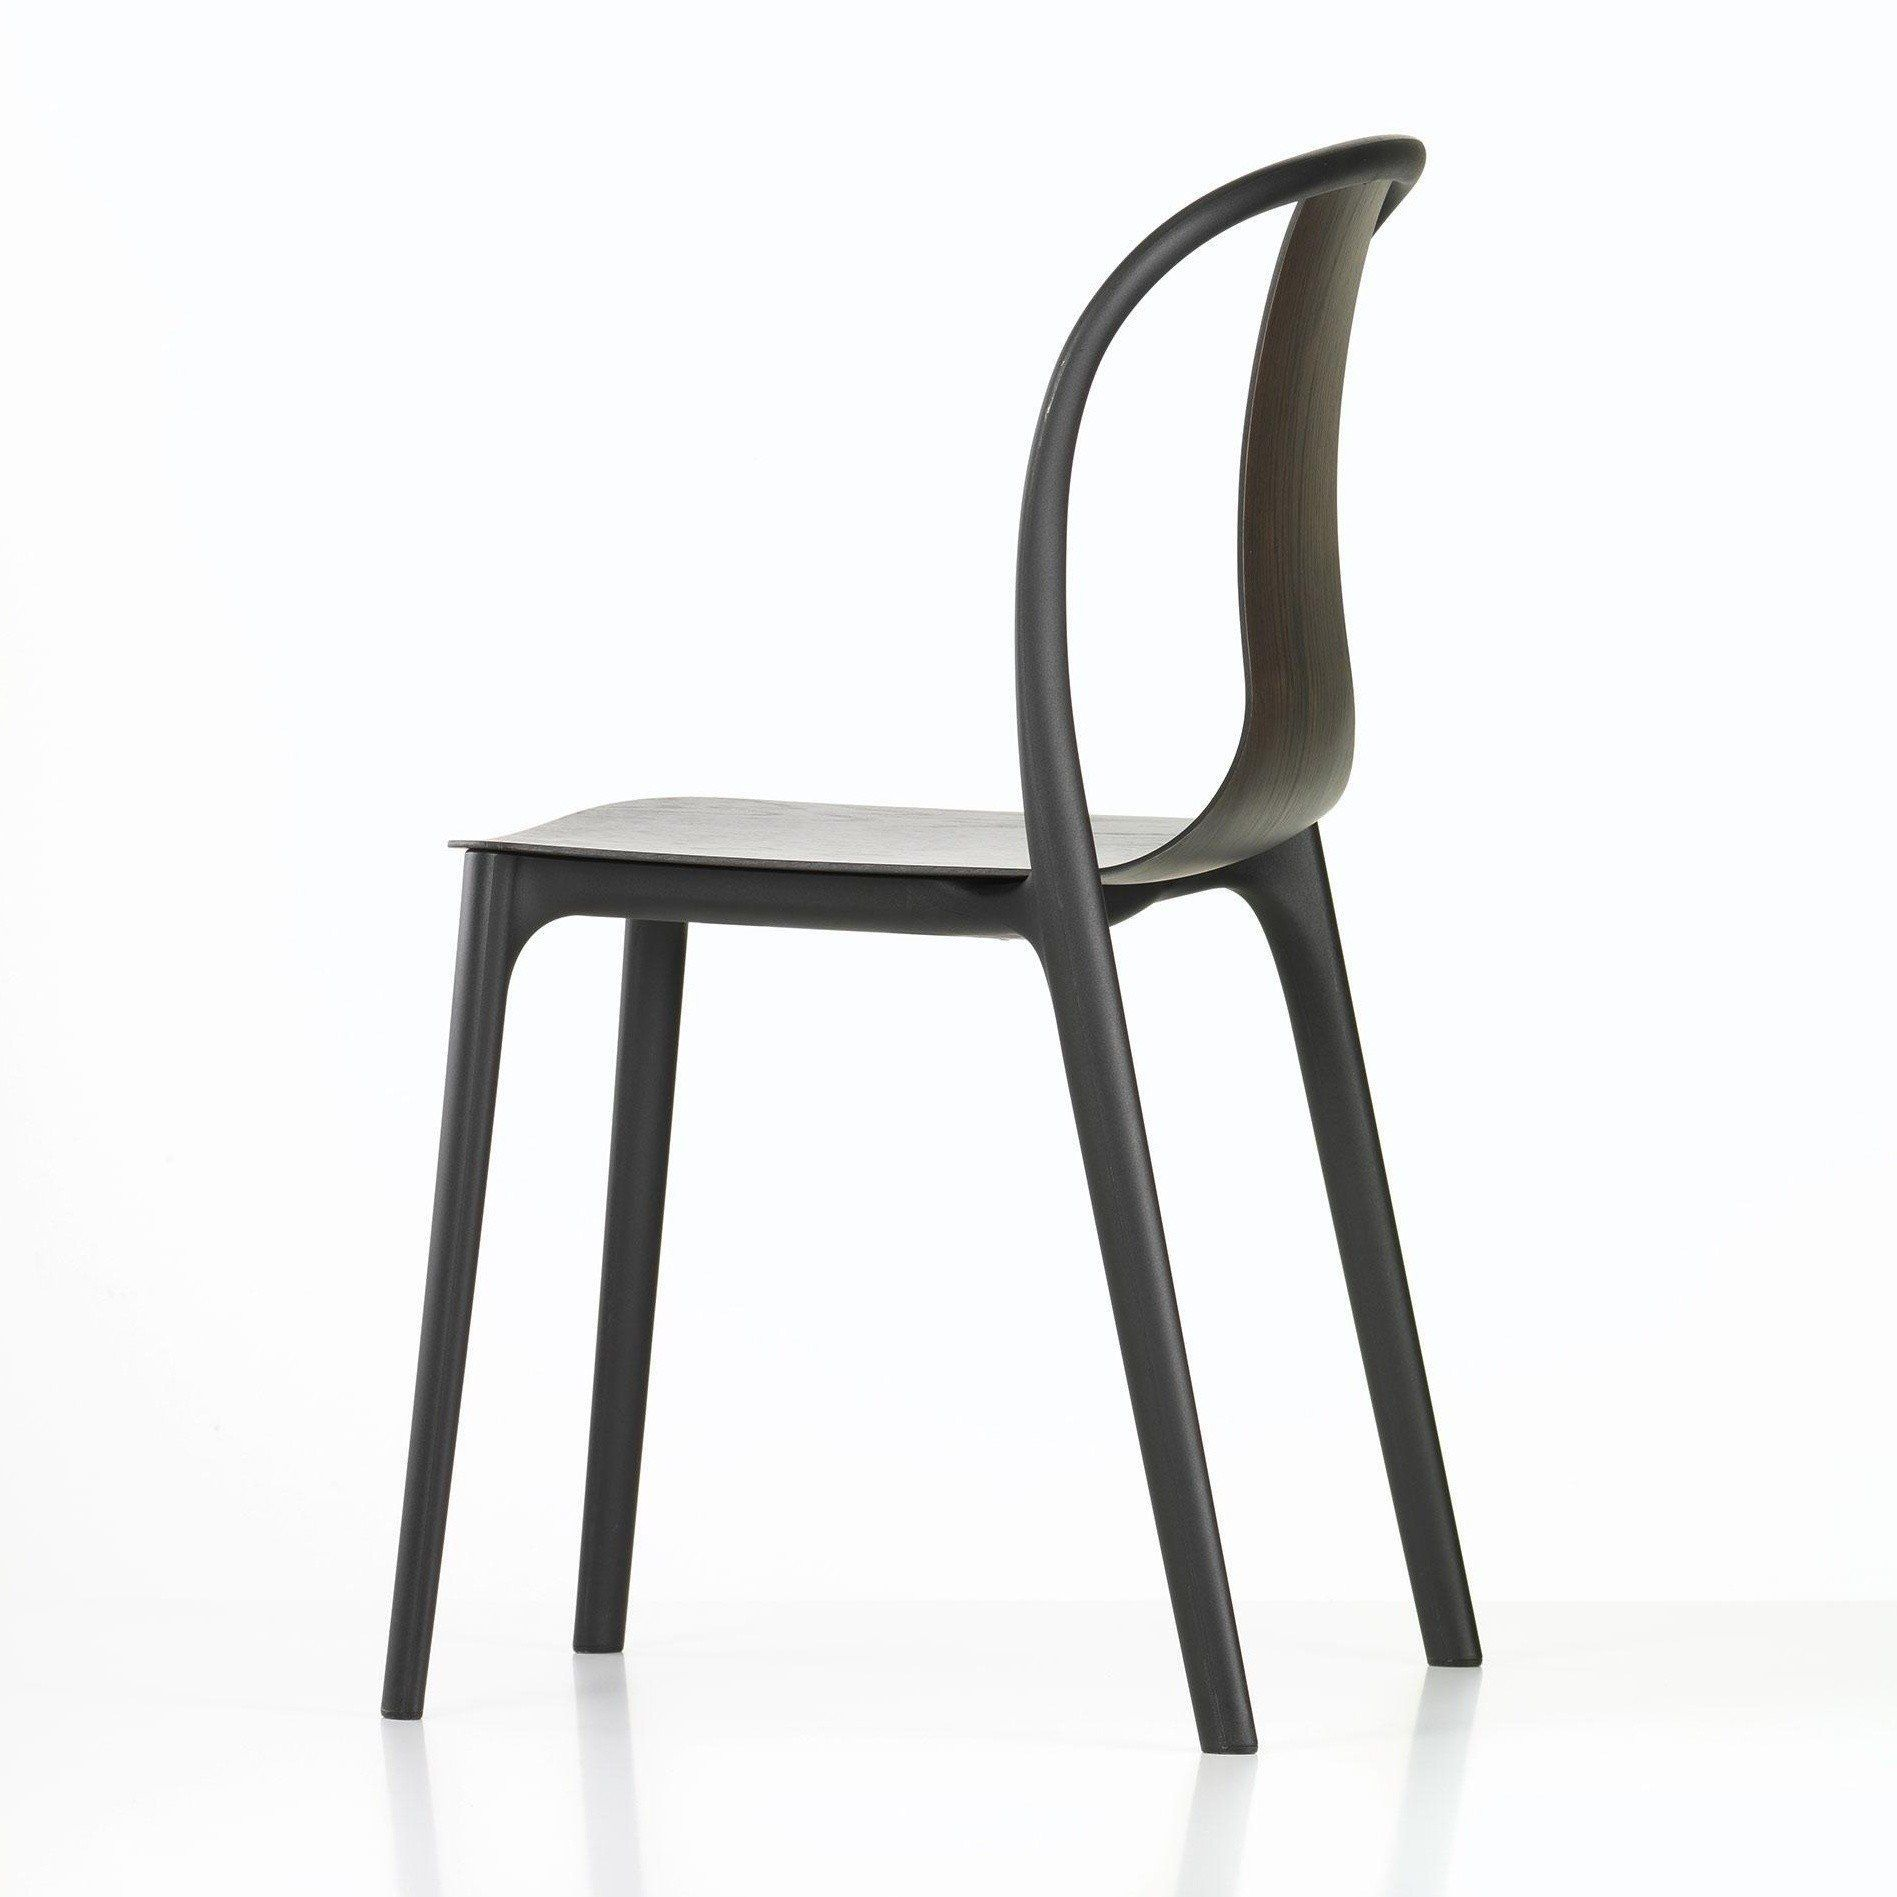 belleville chair plastic chaise de jardin vitra. Black Bedroom Furniture Sets. Home Design Ideas